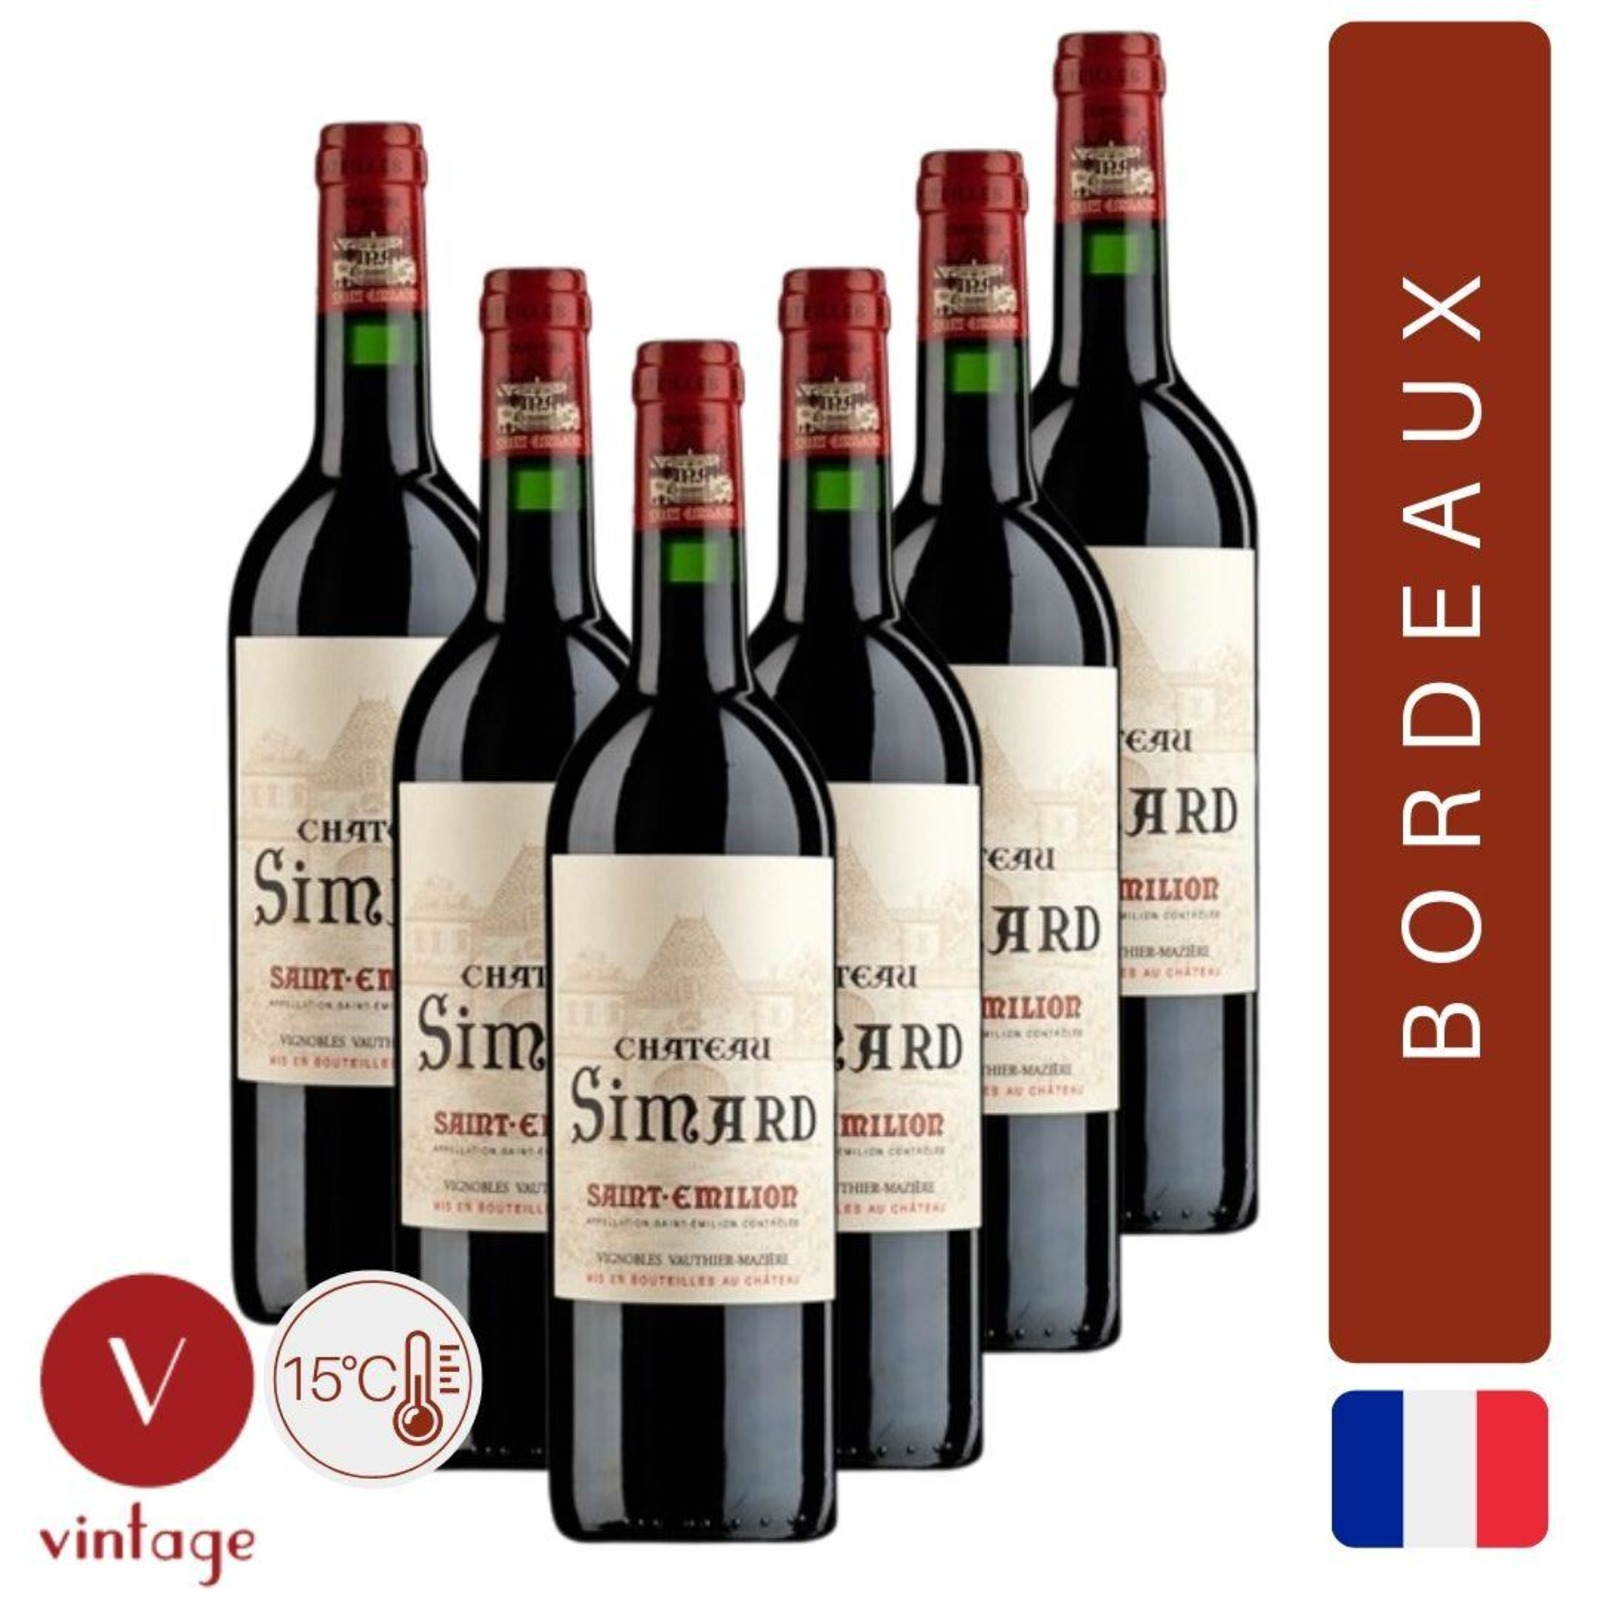 Chateau Simard - Saint Emilion Grand Cru - Bordeaux Red